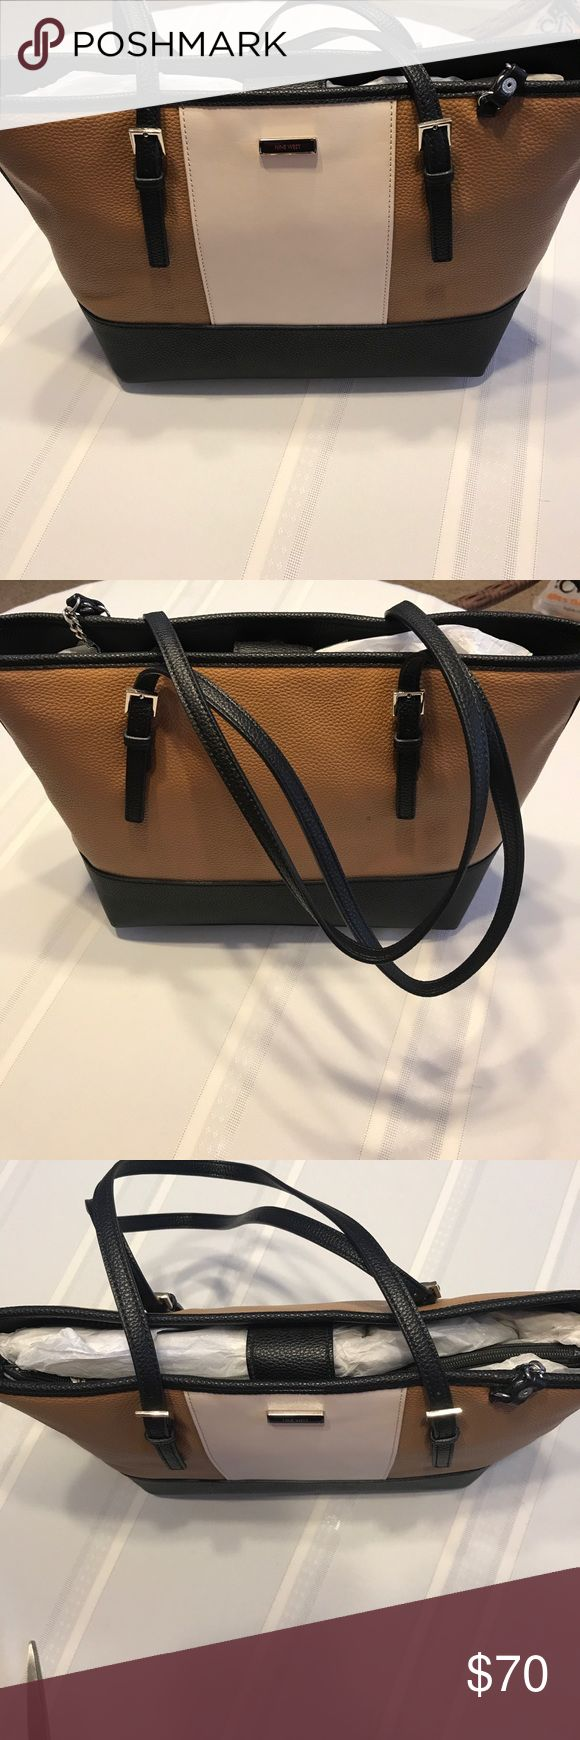 Nine West women's multi colored handbag Nine West women's multi colored handbag.  This is a elegant hand bag with neutral colors.  Well made and can be worn for any occasion. Nine West Bags Shoulder Bags